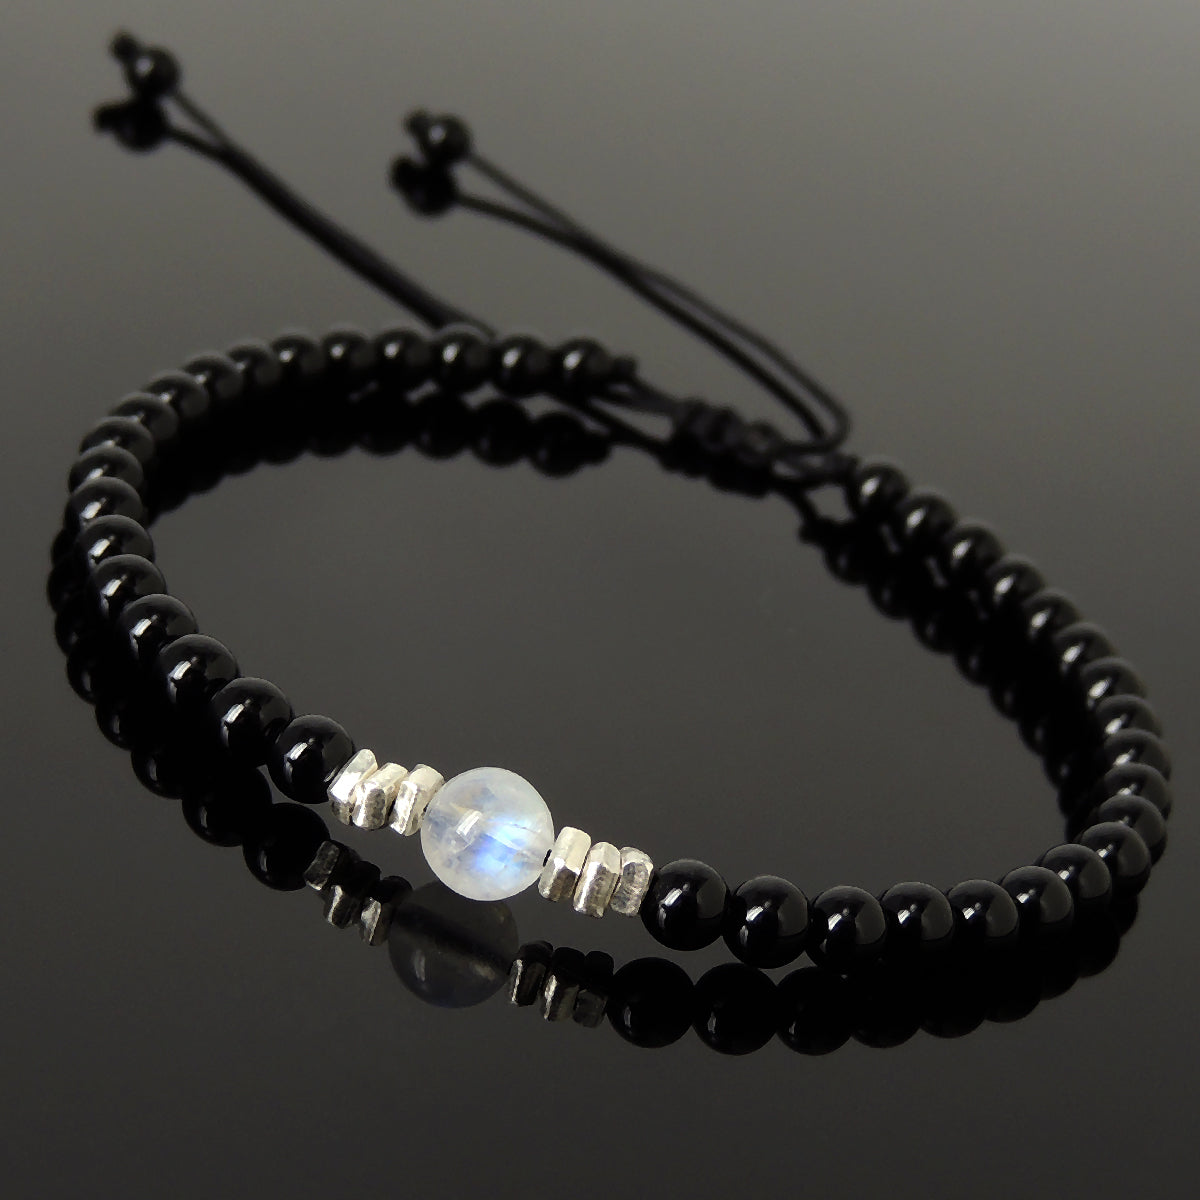 Grade AA Moonstone & Bright Black Onyx Adjustable Braided Bracelet with S925 Sterling Silver Nugget Beads - Handmade by Gem & Silver BR1207